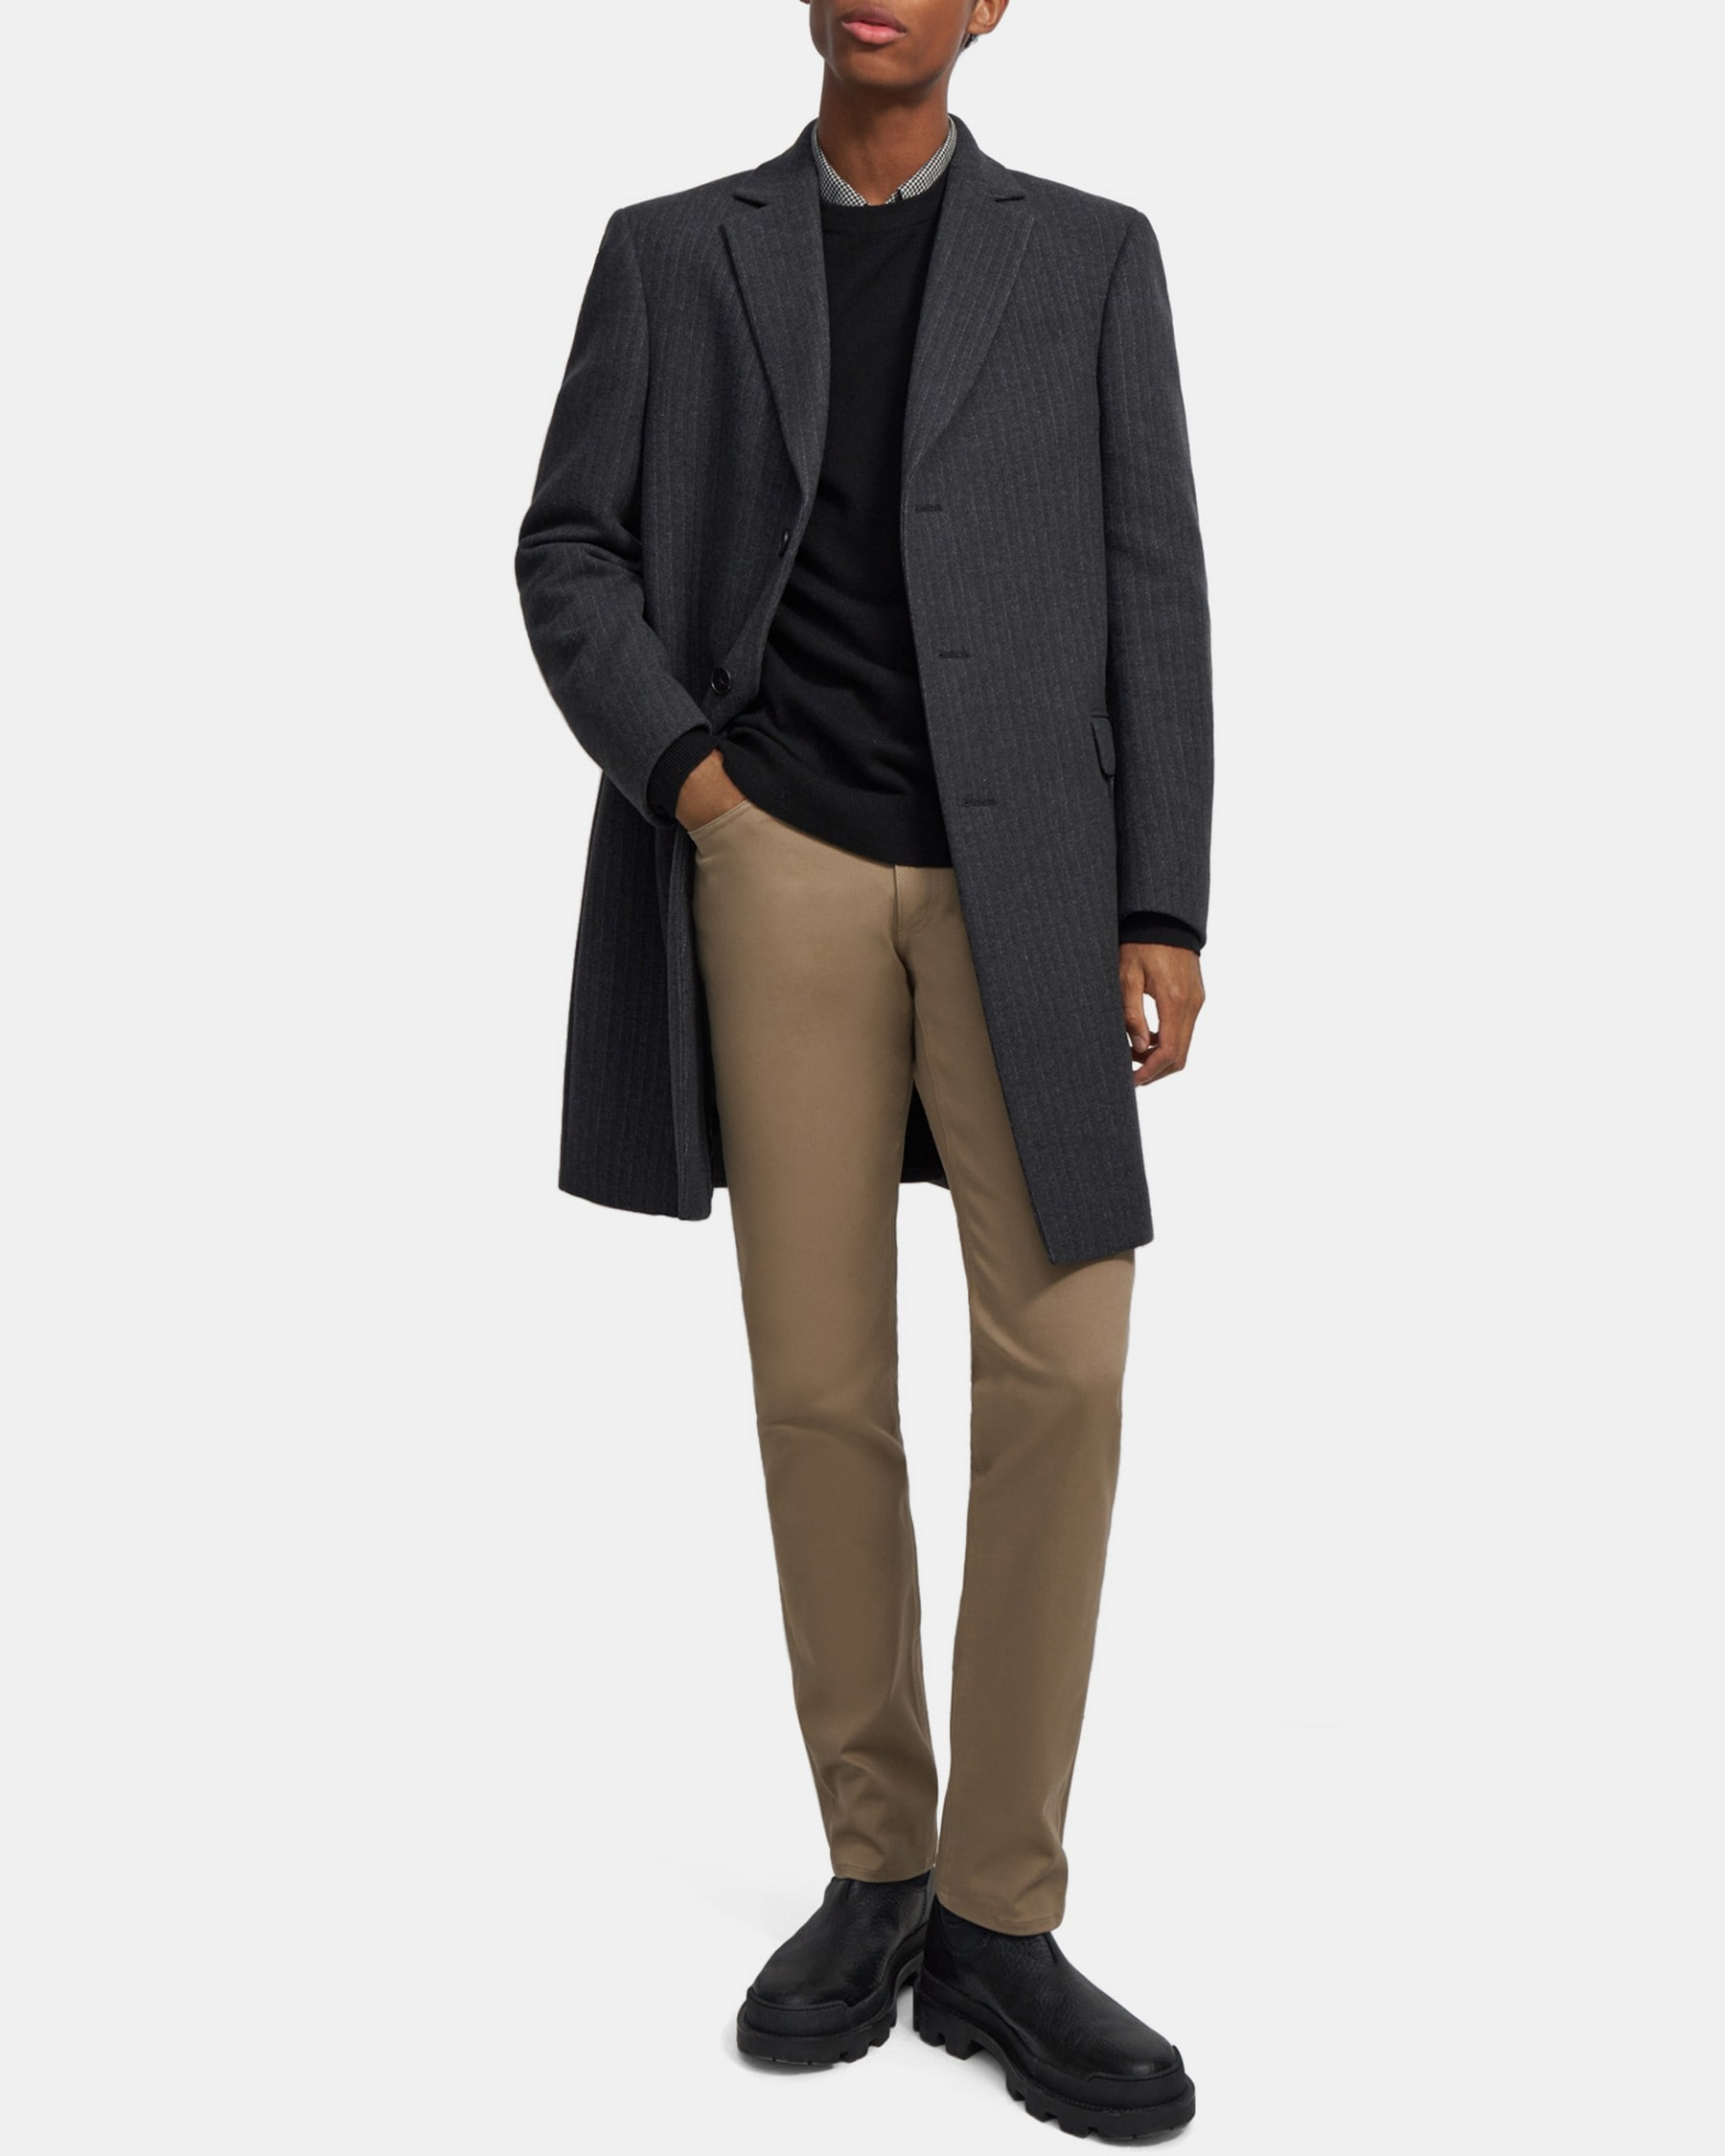 Theory Chambers Coat in Striped Wool Melton